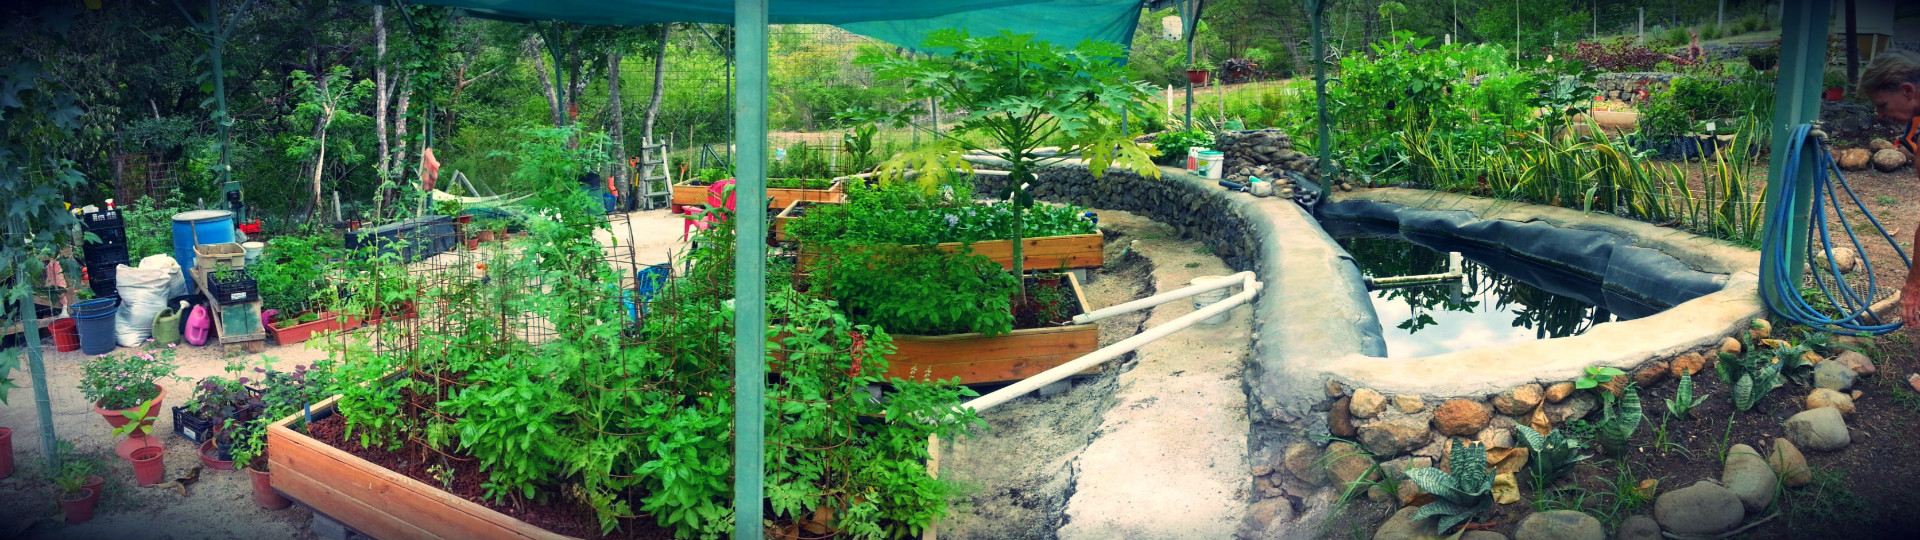 Our Aquaponics System In Costa Rica